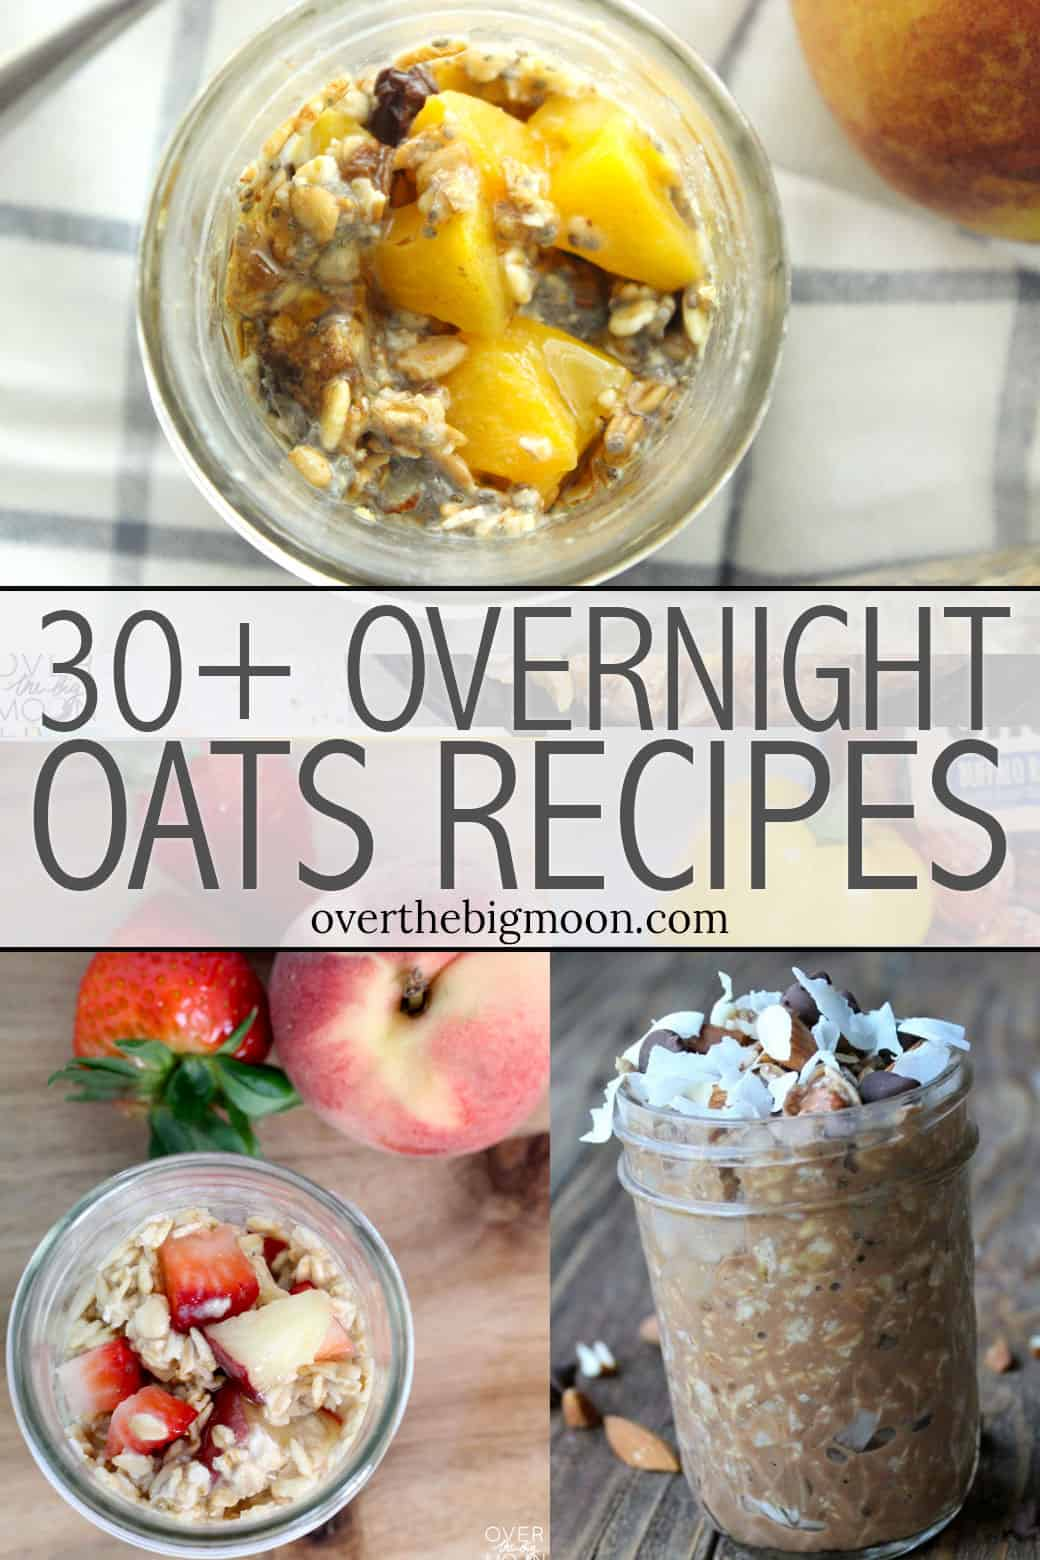 30+ Overnight Oats Recipes that are perfect for those busy mornings where you may need an on-the-go breakfast! From overthebigmoon.com!